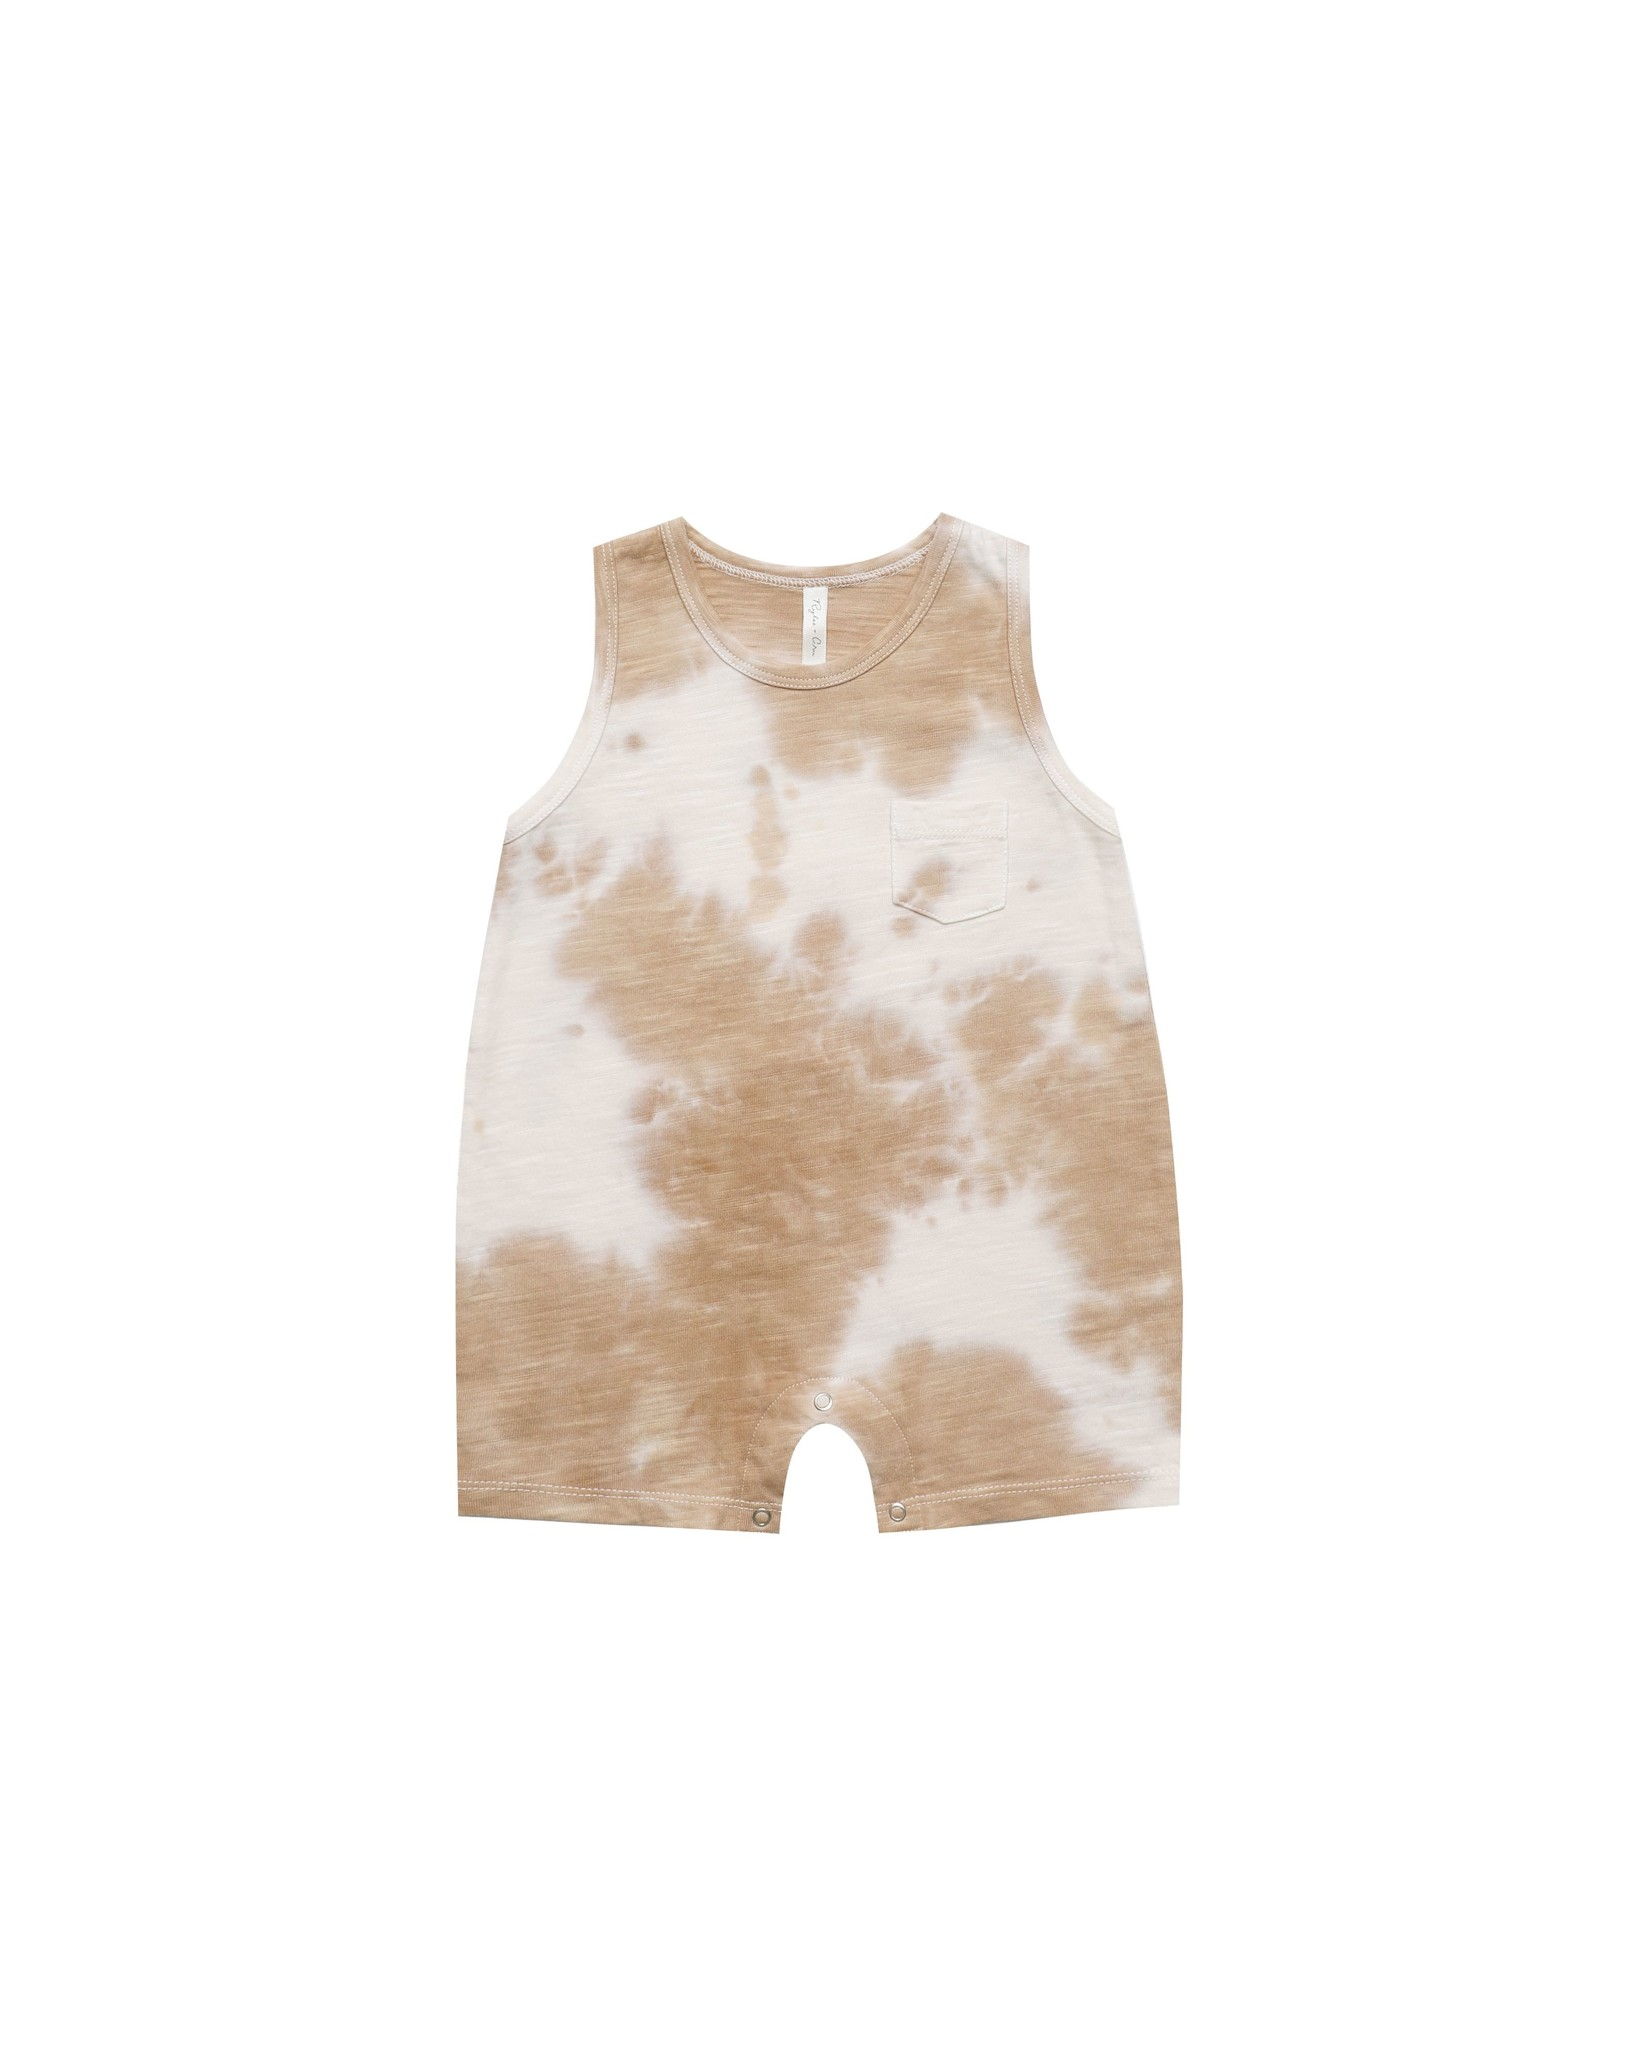 Rylee and Cru Rylee and Cru Tie Dye Sleeveless Onesie